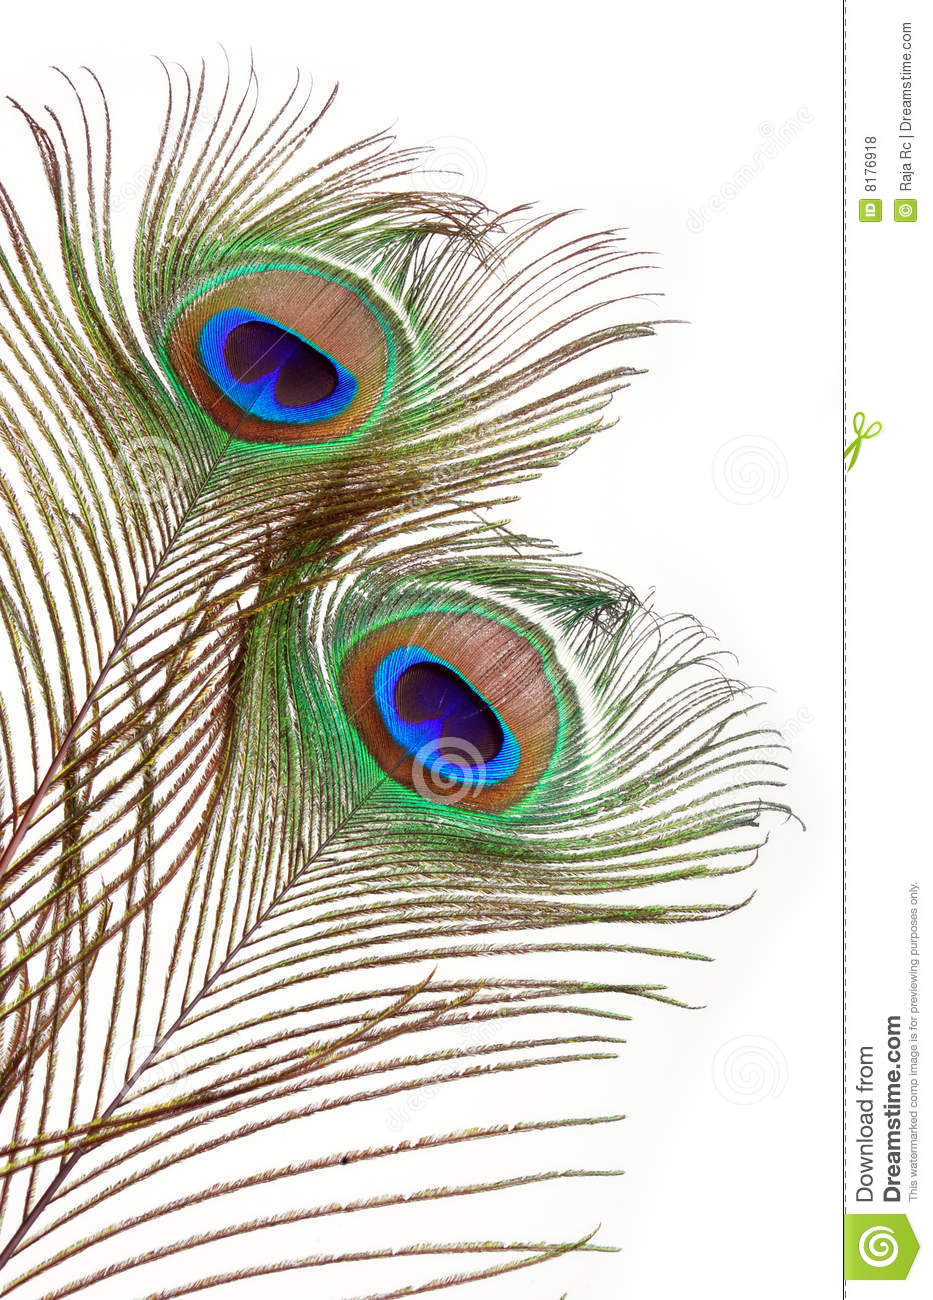 Peacock Feathers Royalty Free Stock Photos - Image: 8176918